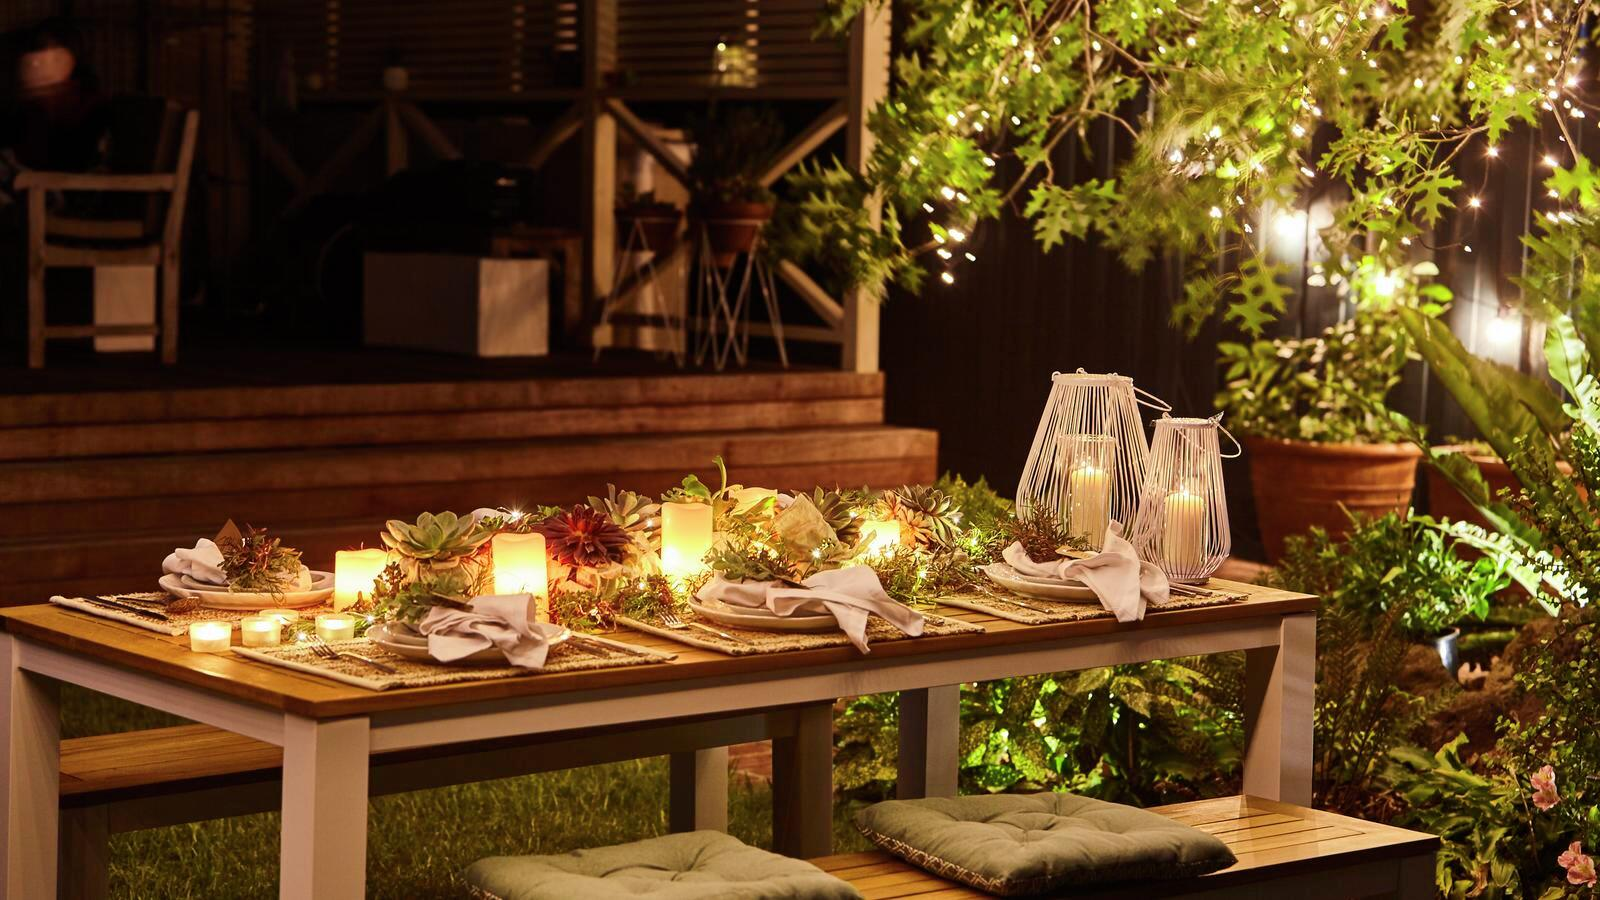 Outdoor entertaining - Dining - Furniture - Lighting - Night time - String lights - Candles